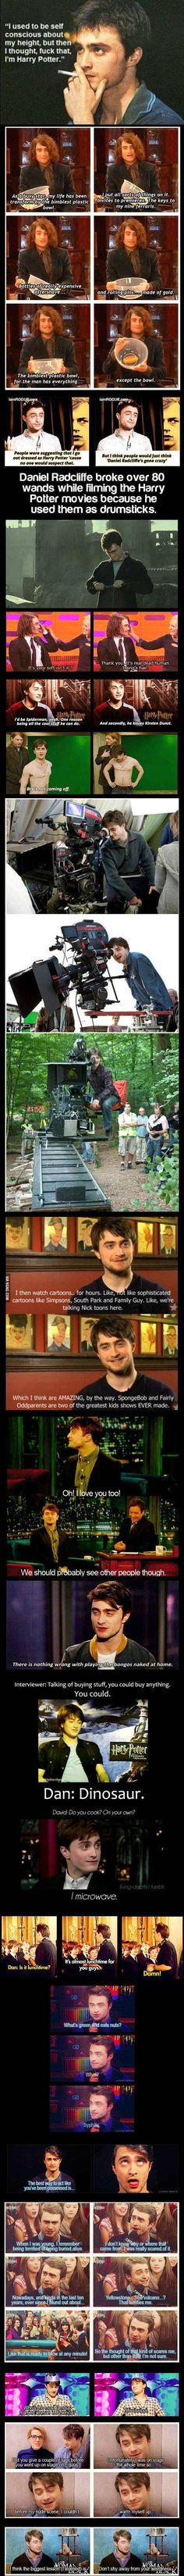 Daniel Radcliffe is like the female version of Jennifer Lawrence.